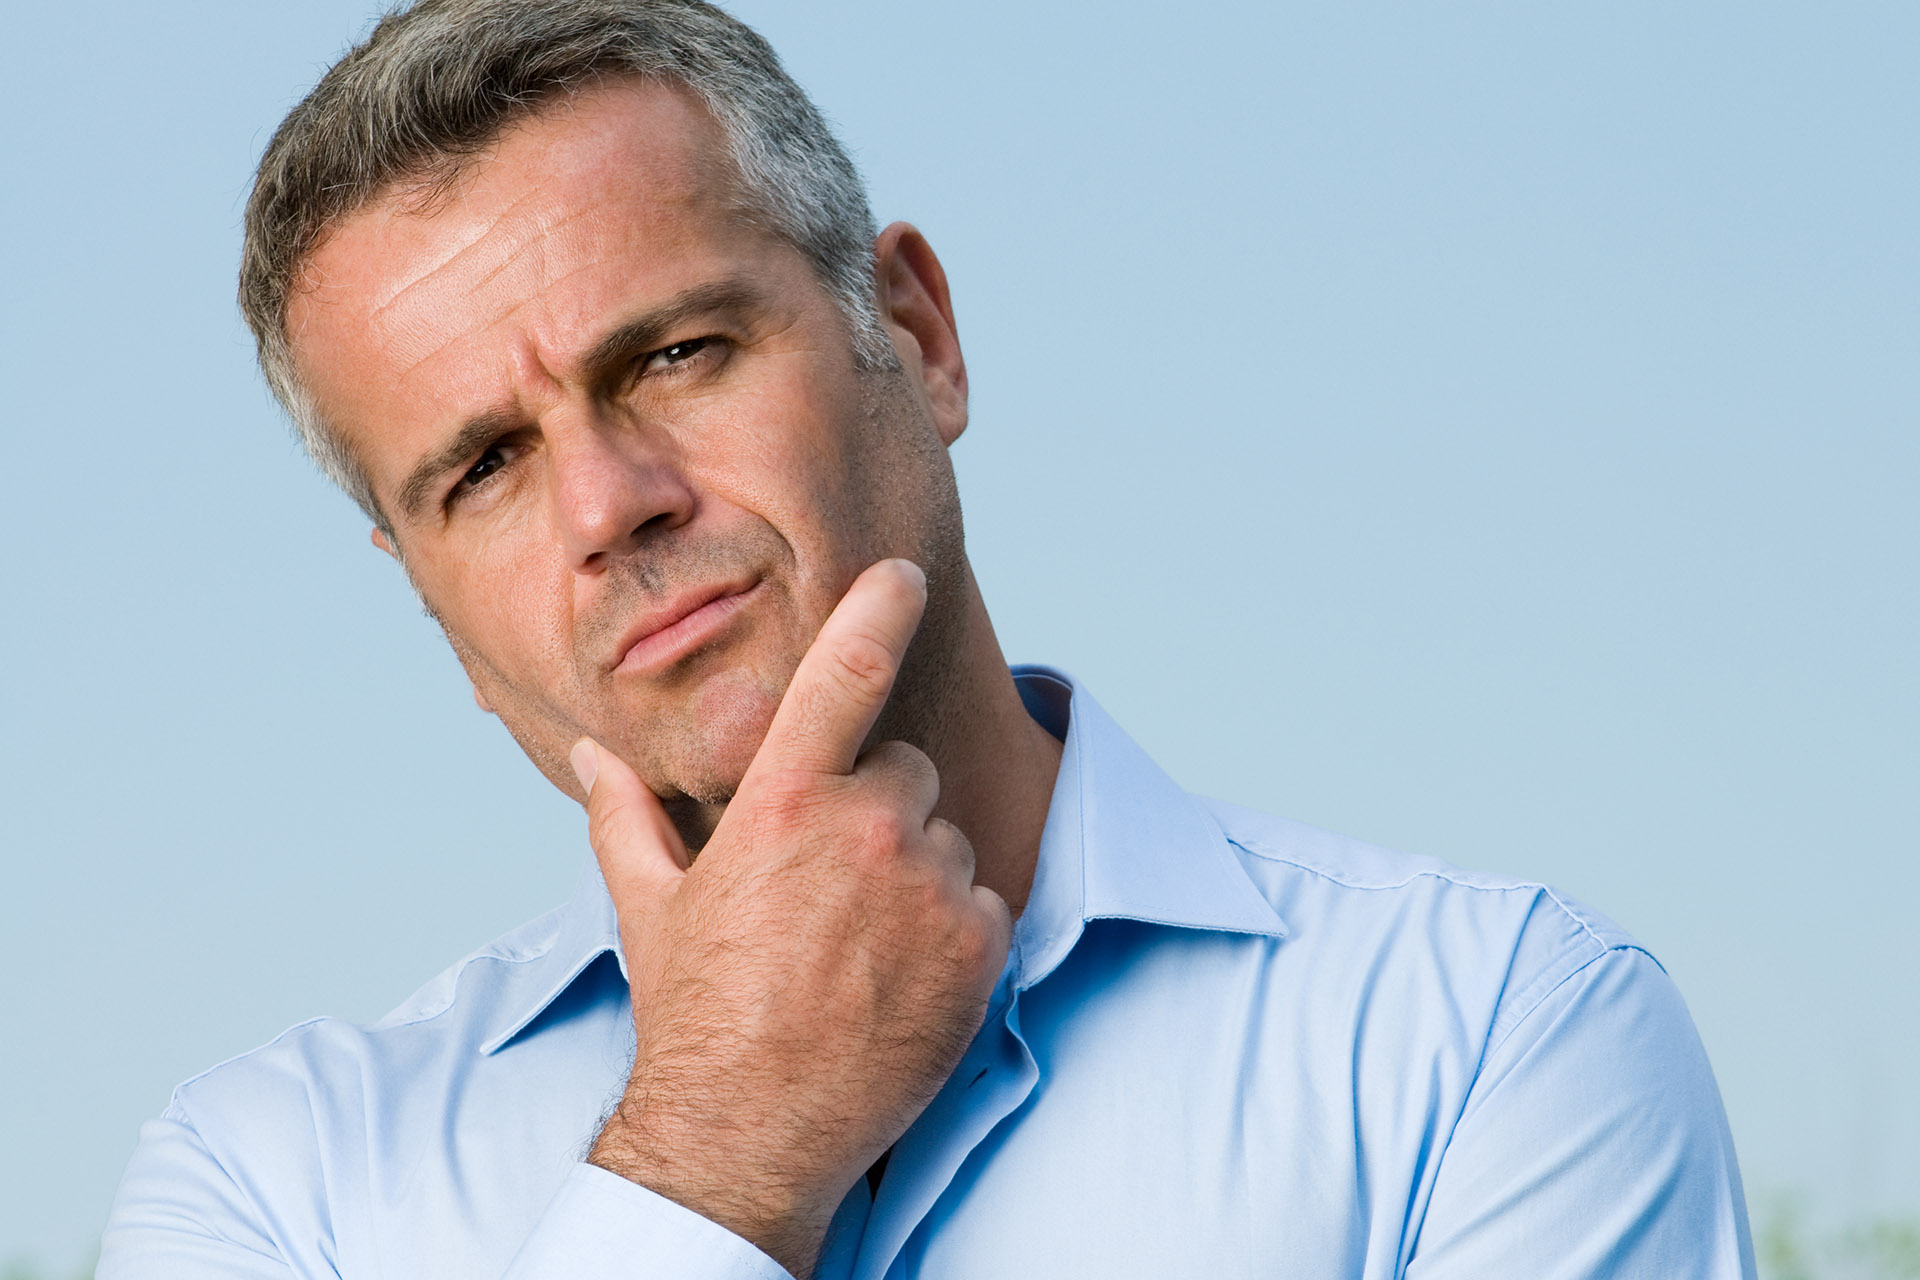 Man Posing With Contemplative and Doubtful Expression on His Face